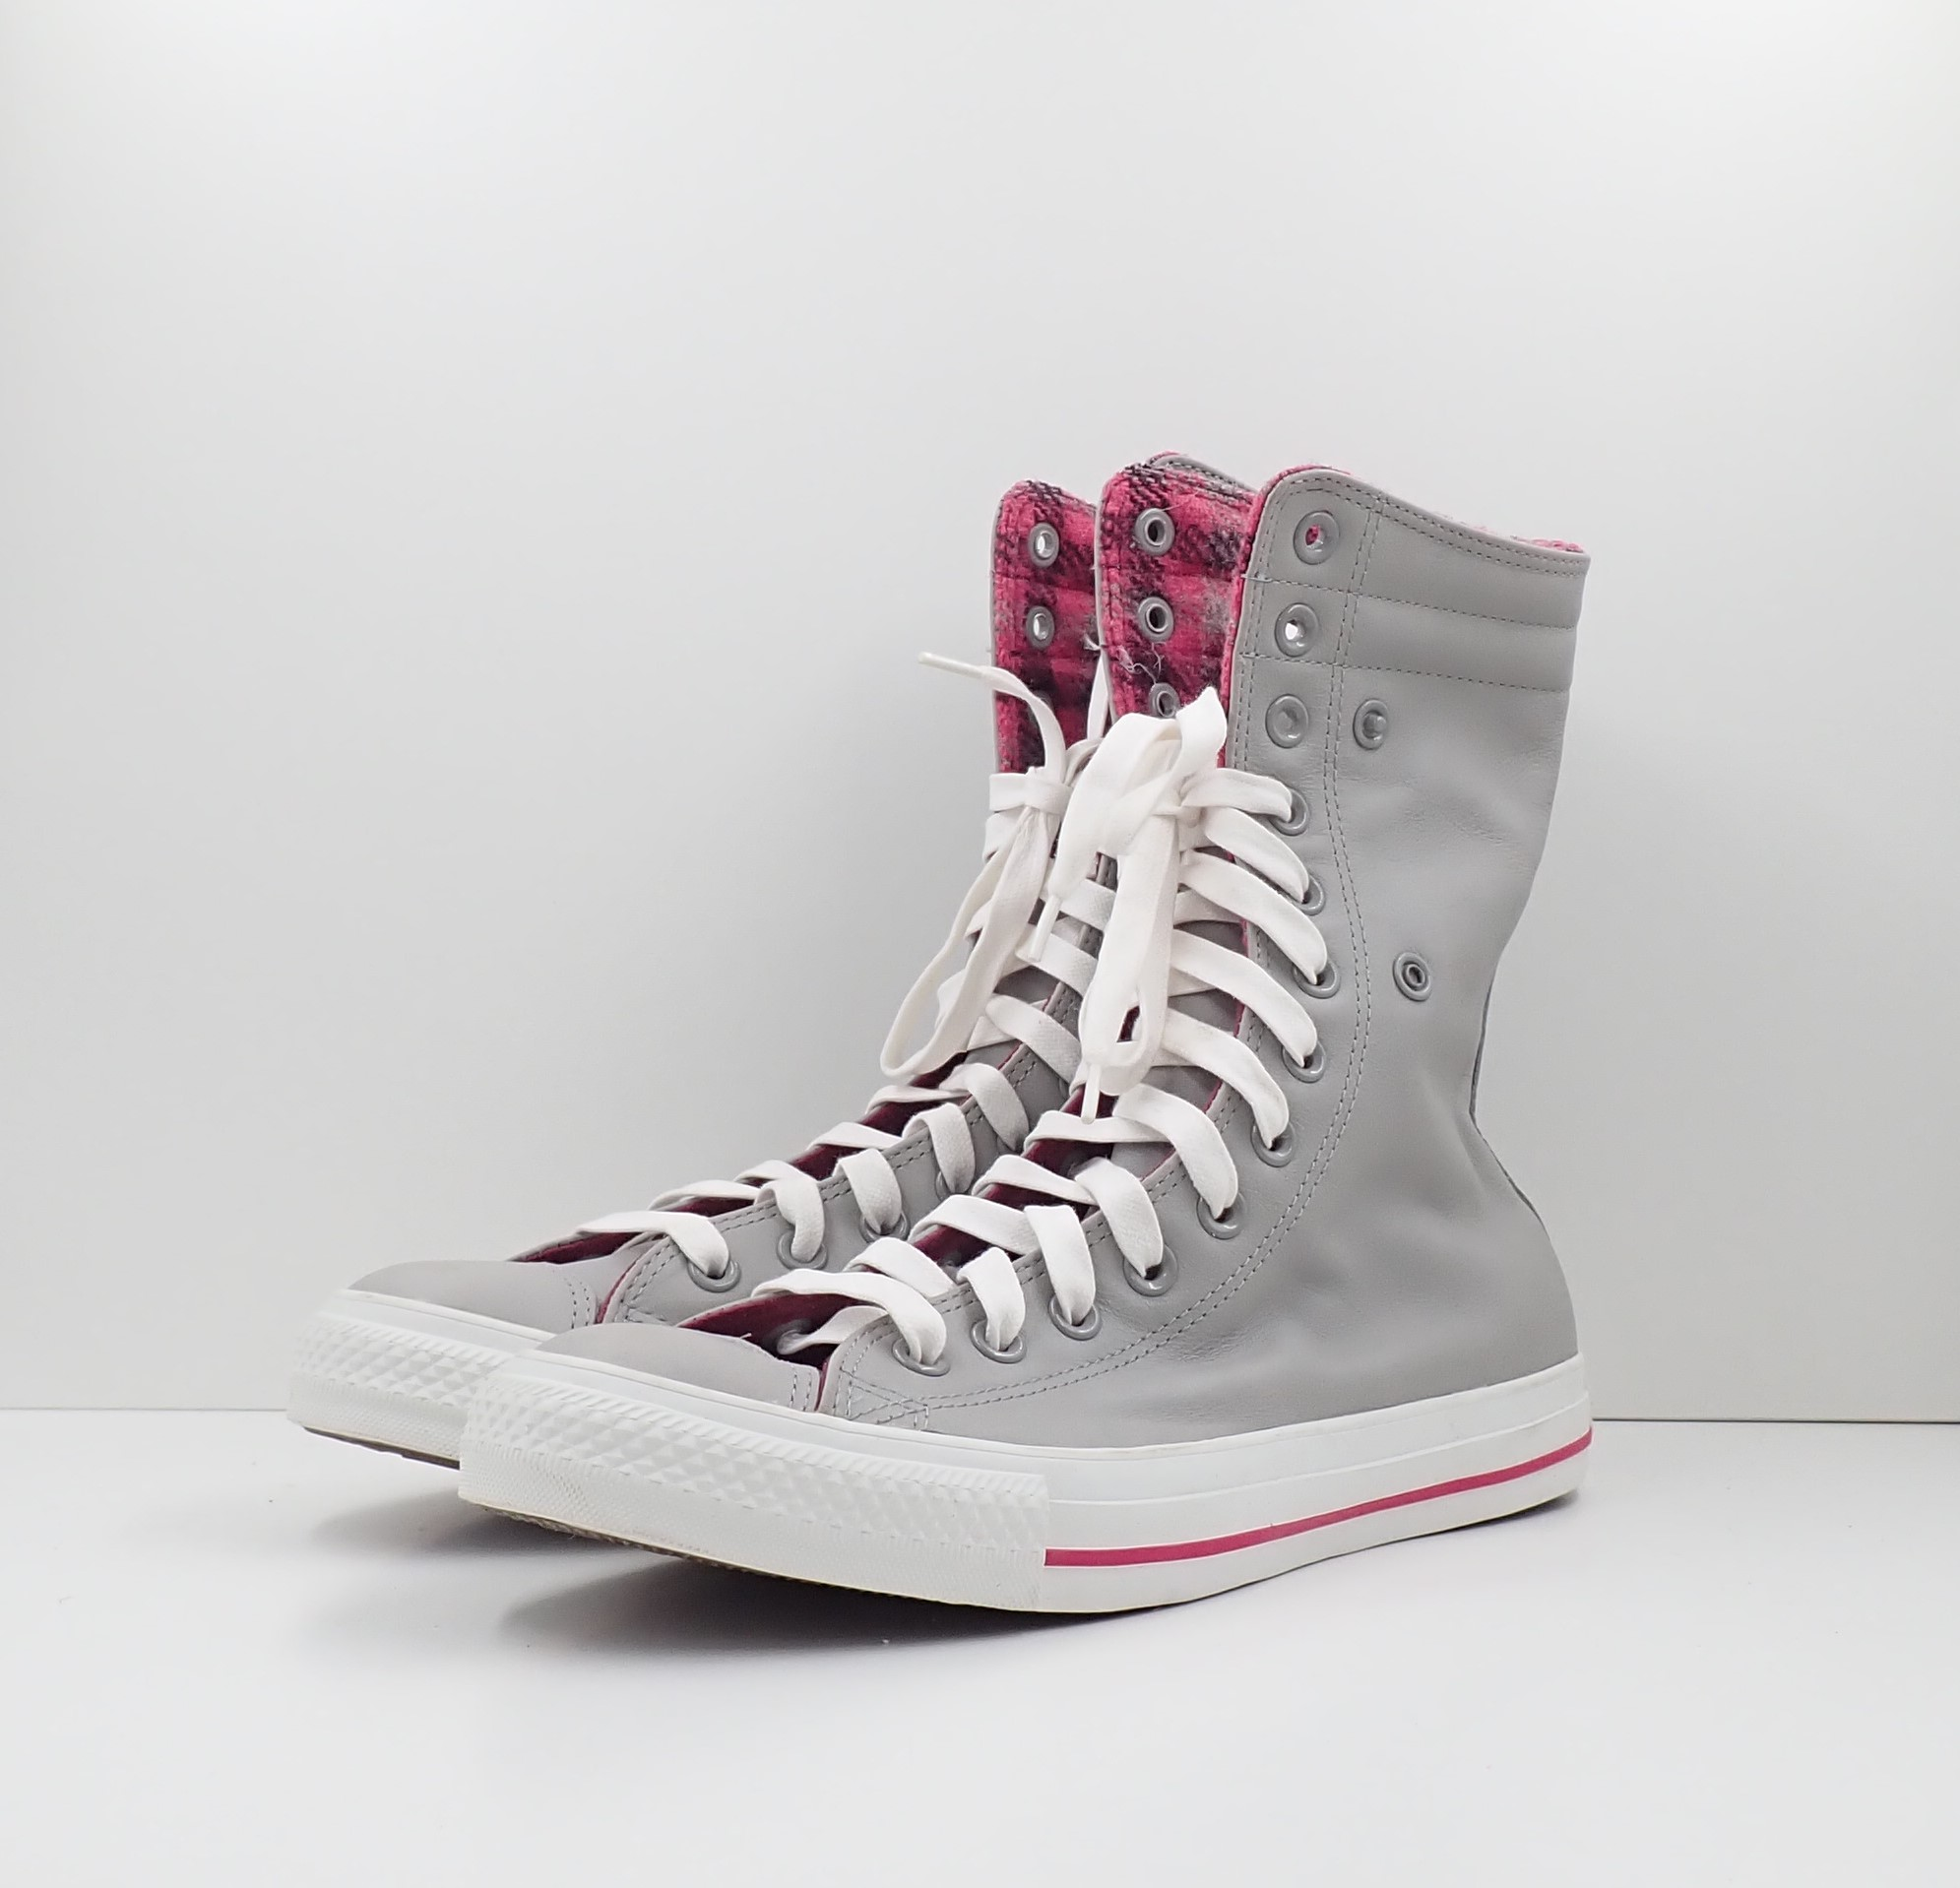 Converse Chuck Taylor All Star High Leather Grey/Pink